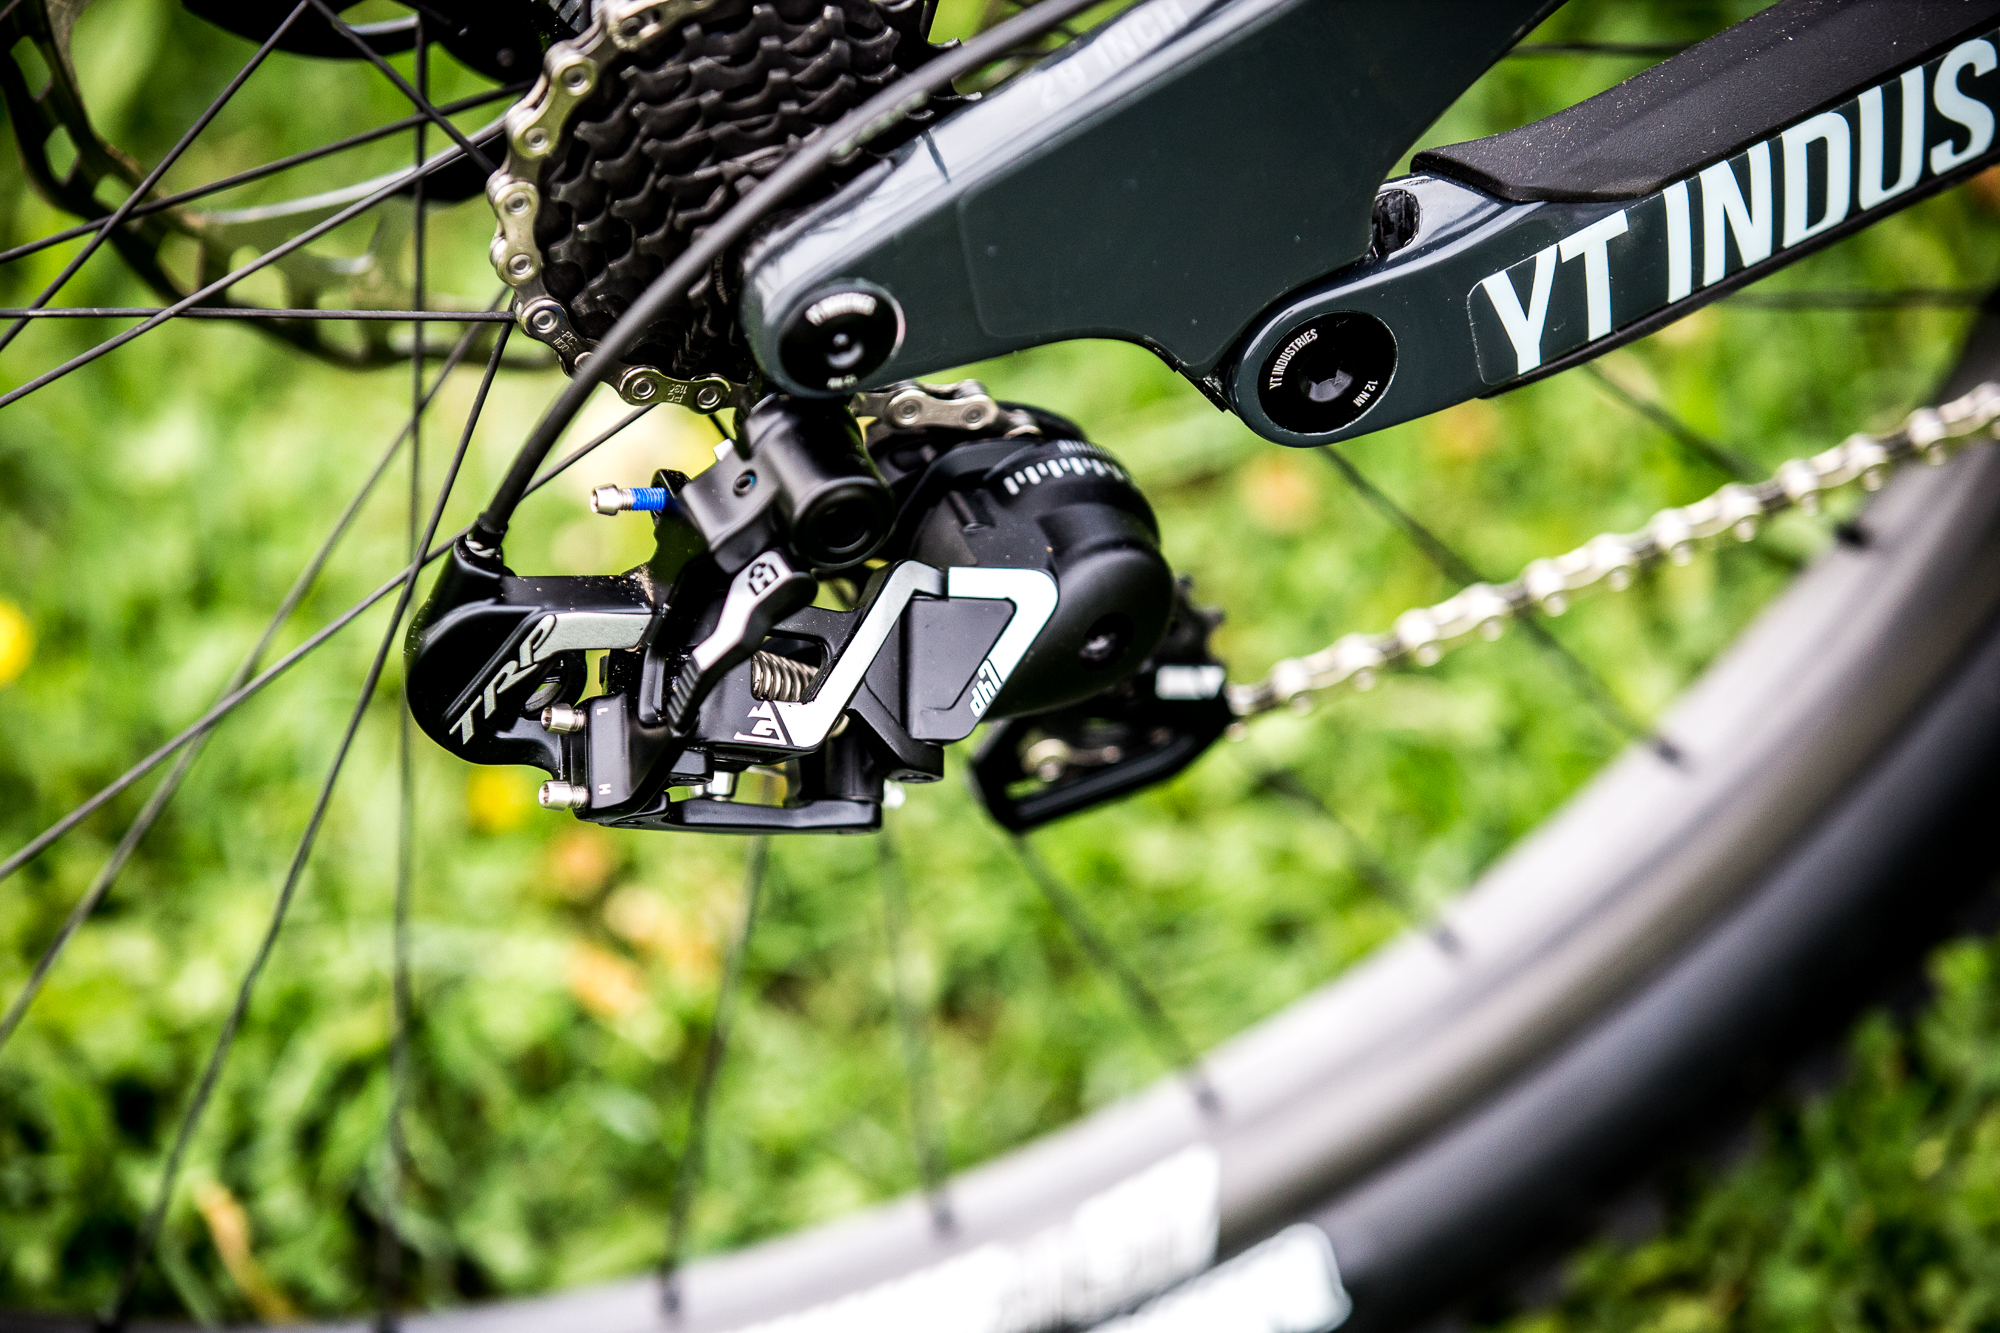 Tektro Racing Products Sprints into the MTB Drivetrain Market With a New 7-Speed, DH Derailleur and Shifter - Singletracks Mountain Bike News